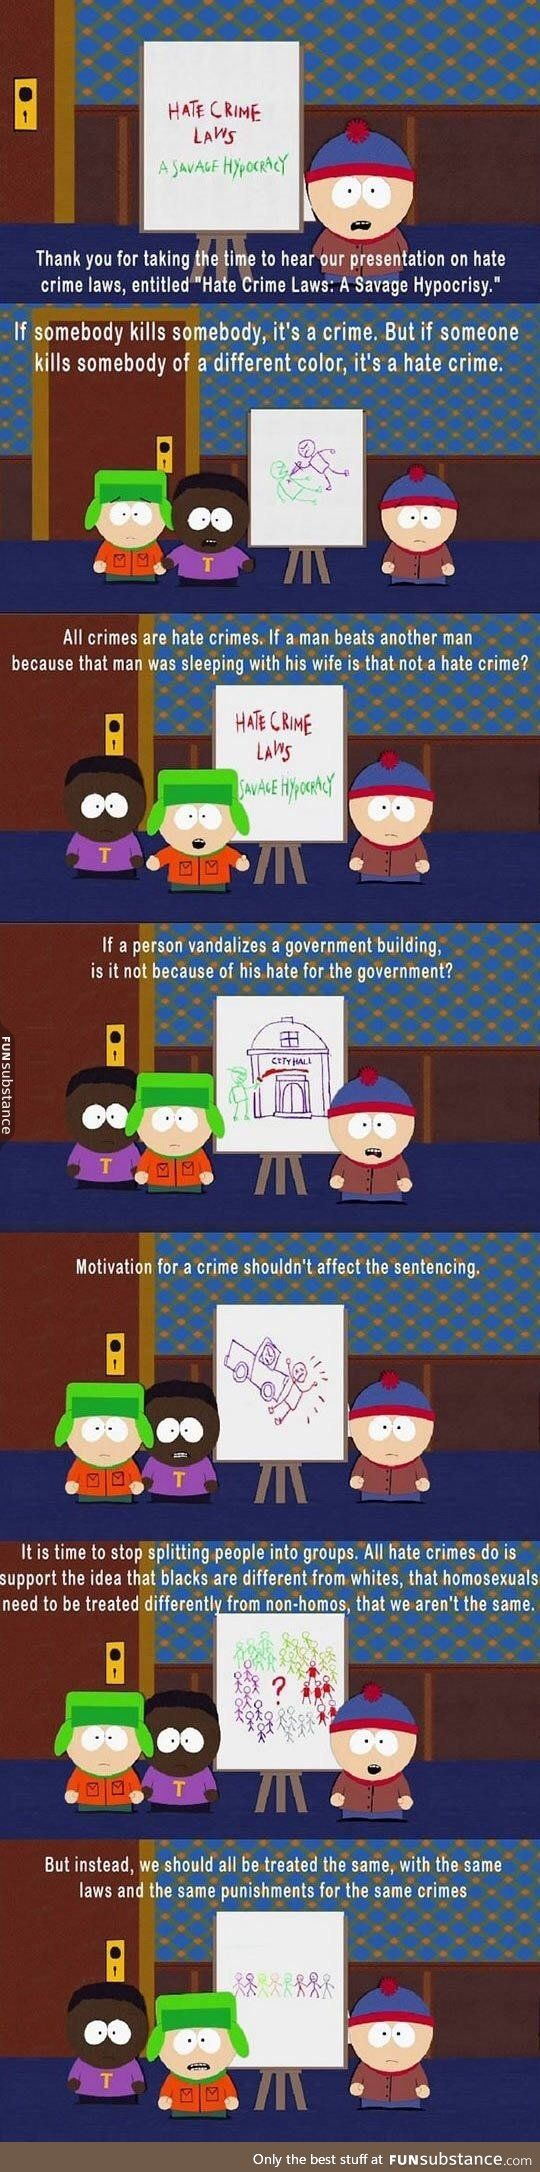 Why South Park is Important